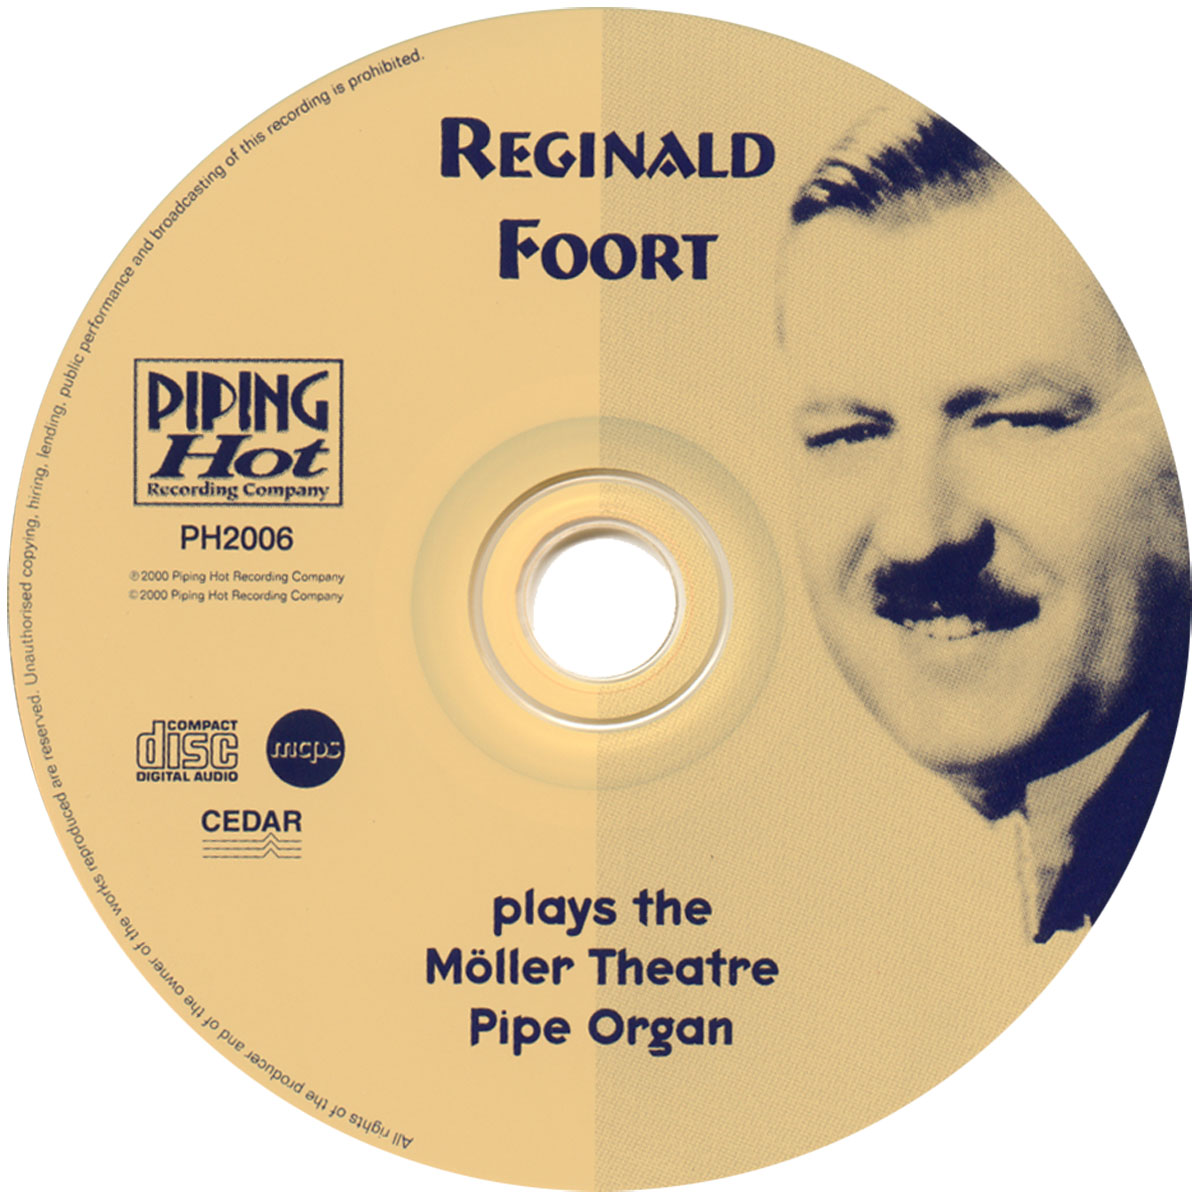 Reginald Foort - Plays the Moller Theatre Pipe Organ (Disc)